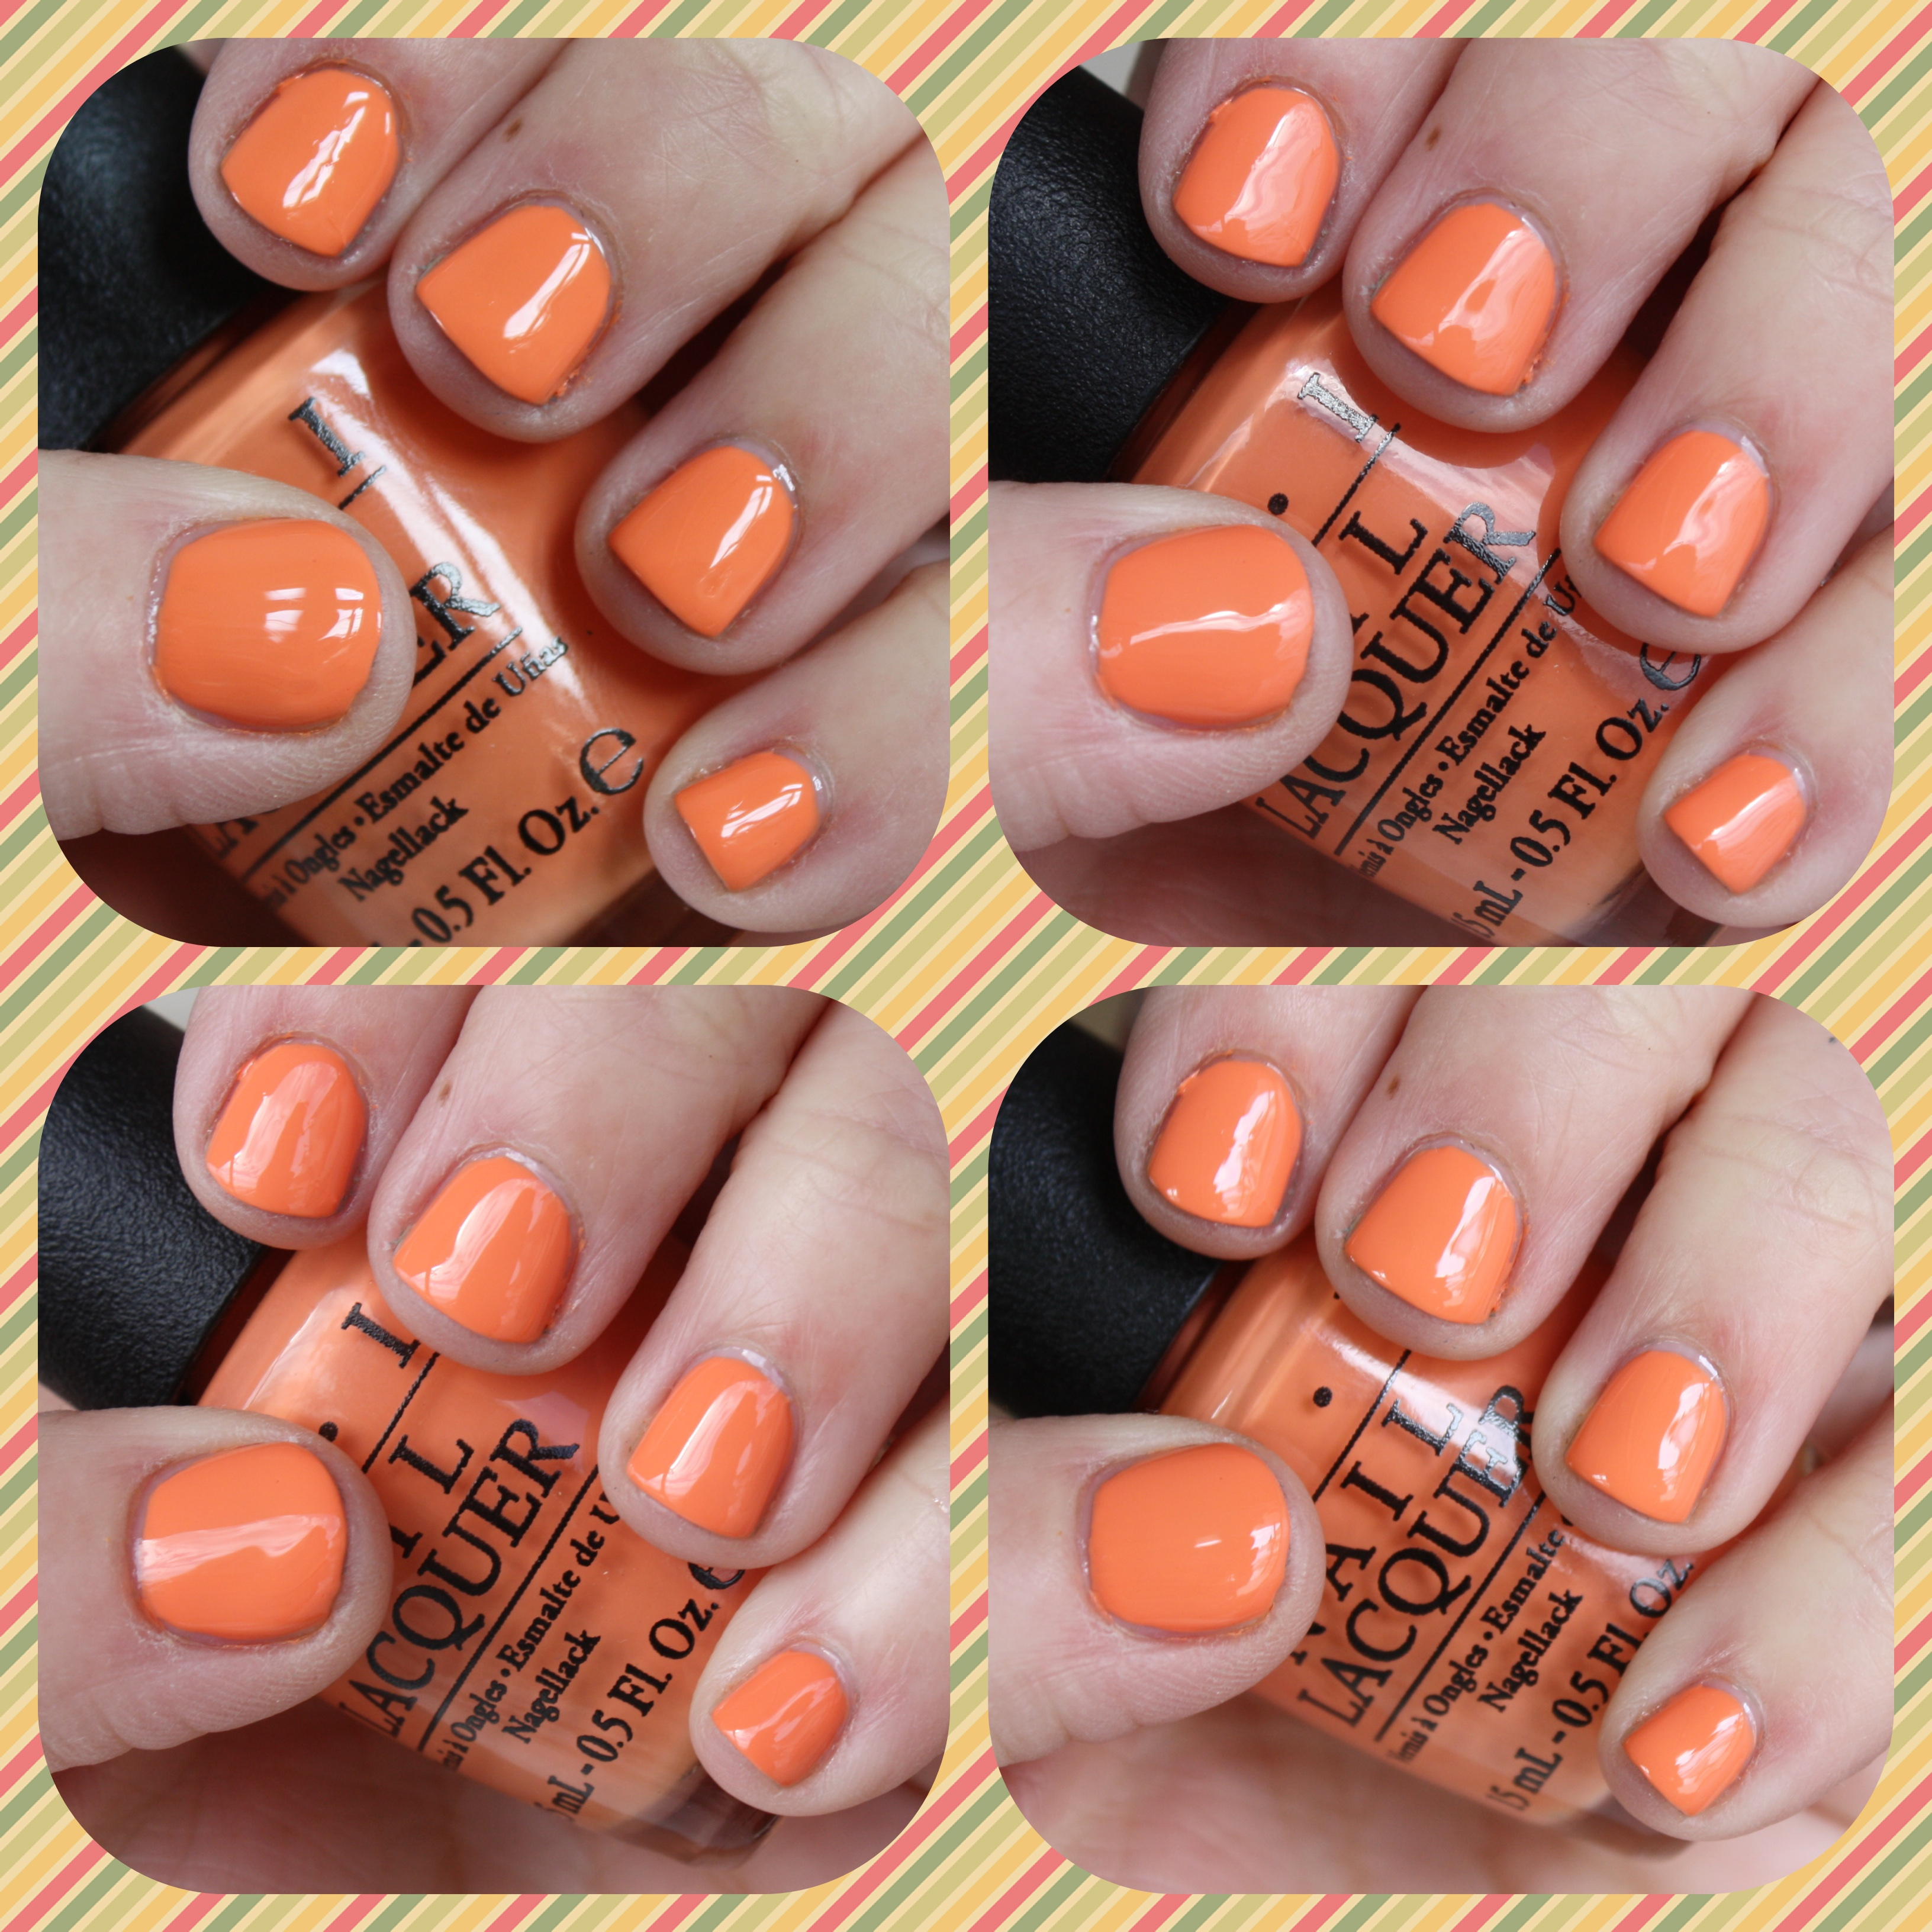 horrendous color – just another nail polish blog